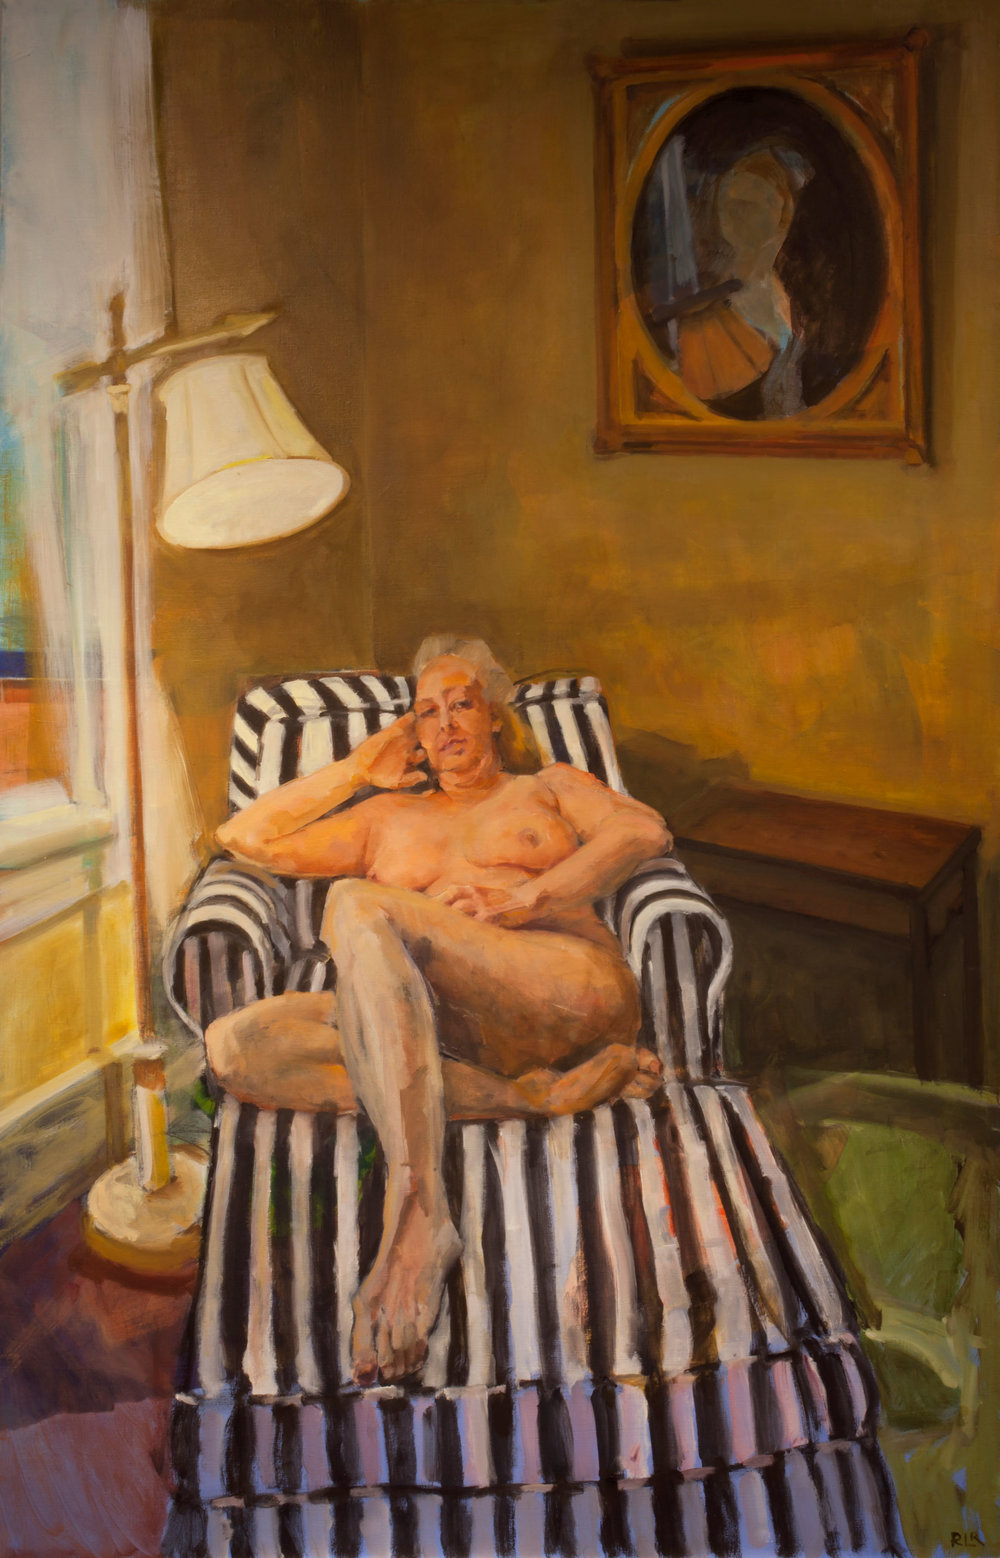 Woman on Striped Couch